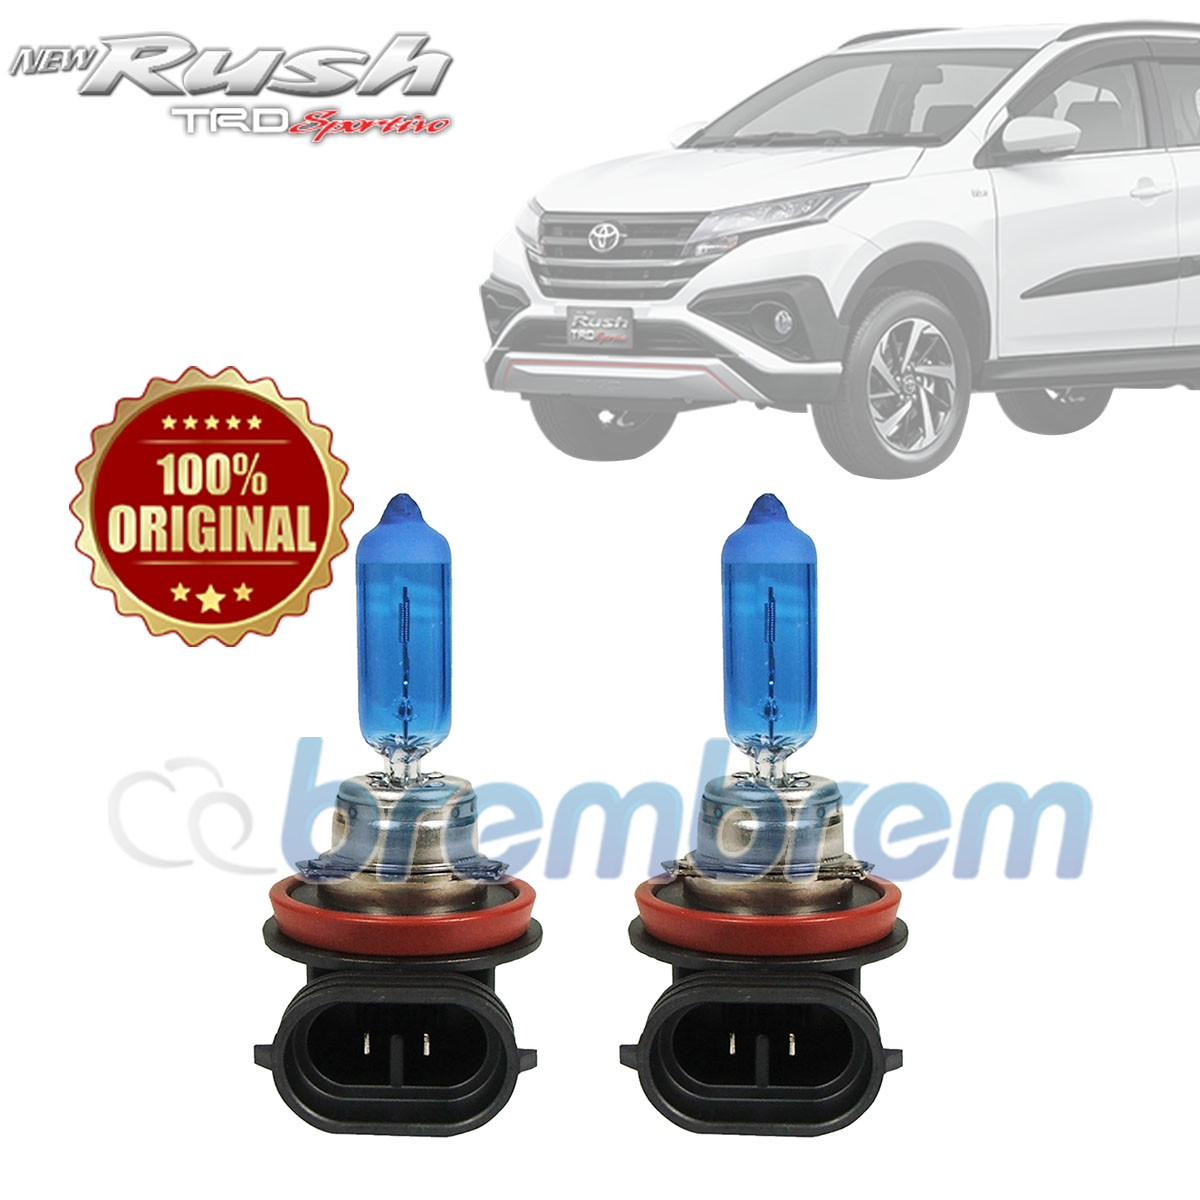 PHILIPS DIAMOND VISION H11 (5000K) - LAMPU HALOGEN TOYOTA ALL NEW RUSH